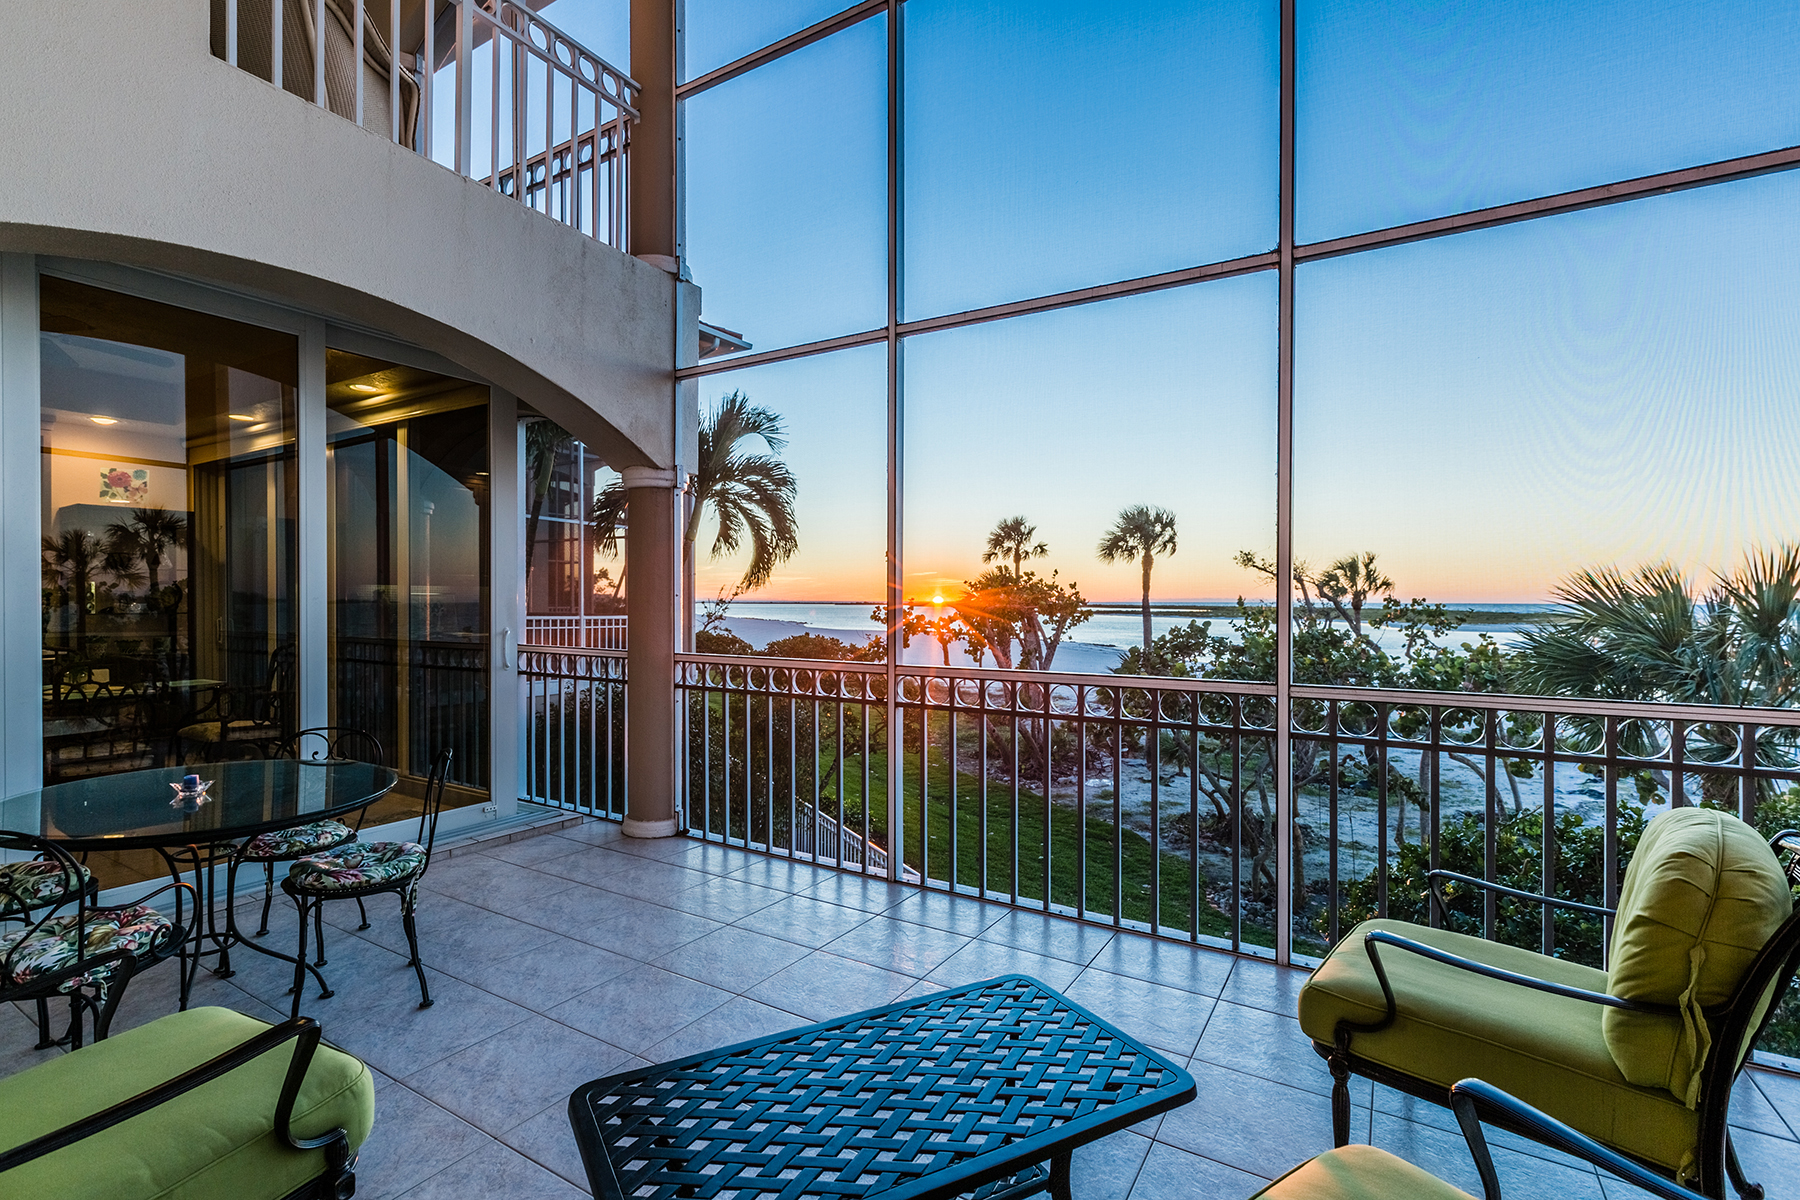 Condominium for Sale at HIDEAWAY BEACH 1000 Royal Marco Way 4, Marco Island, Florida, 34145 United States